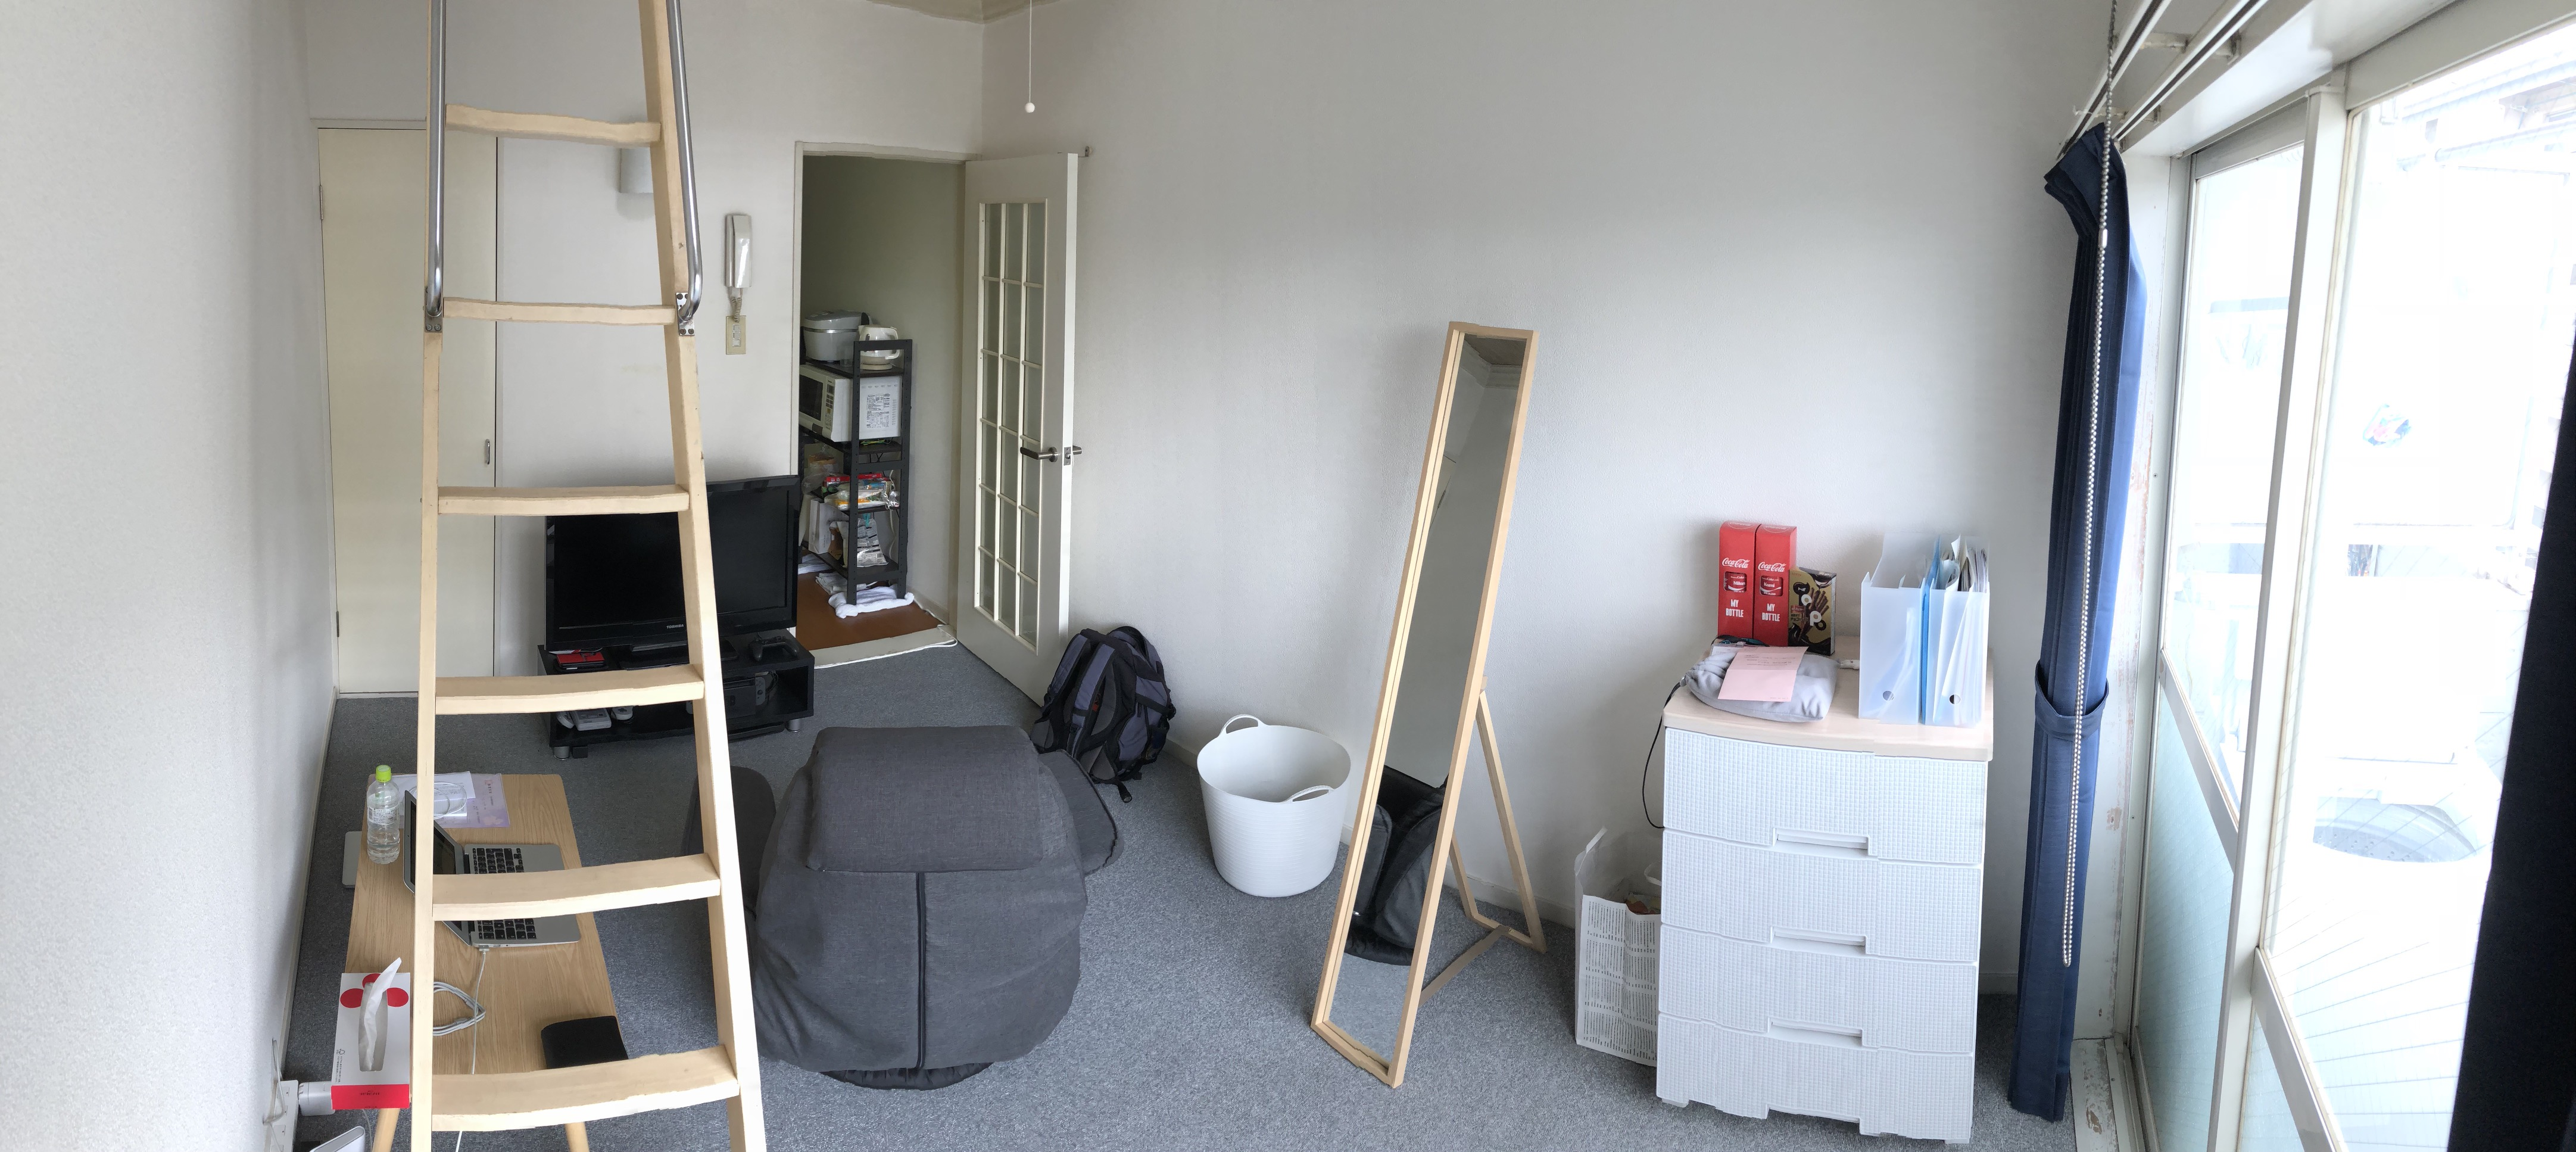 (Caption) Panorama shot! Some things that were not visible in the previous shot include storage closet on the left side, obviously the TV and a TV stand in the middle and Kumi's cabinet on the left side.